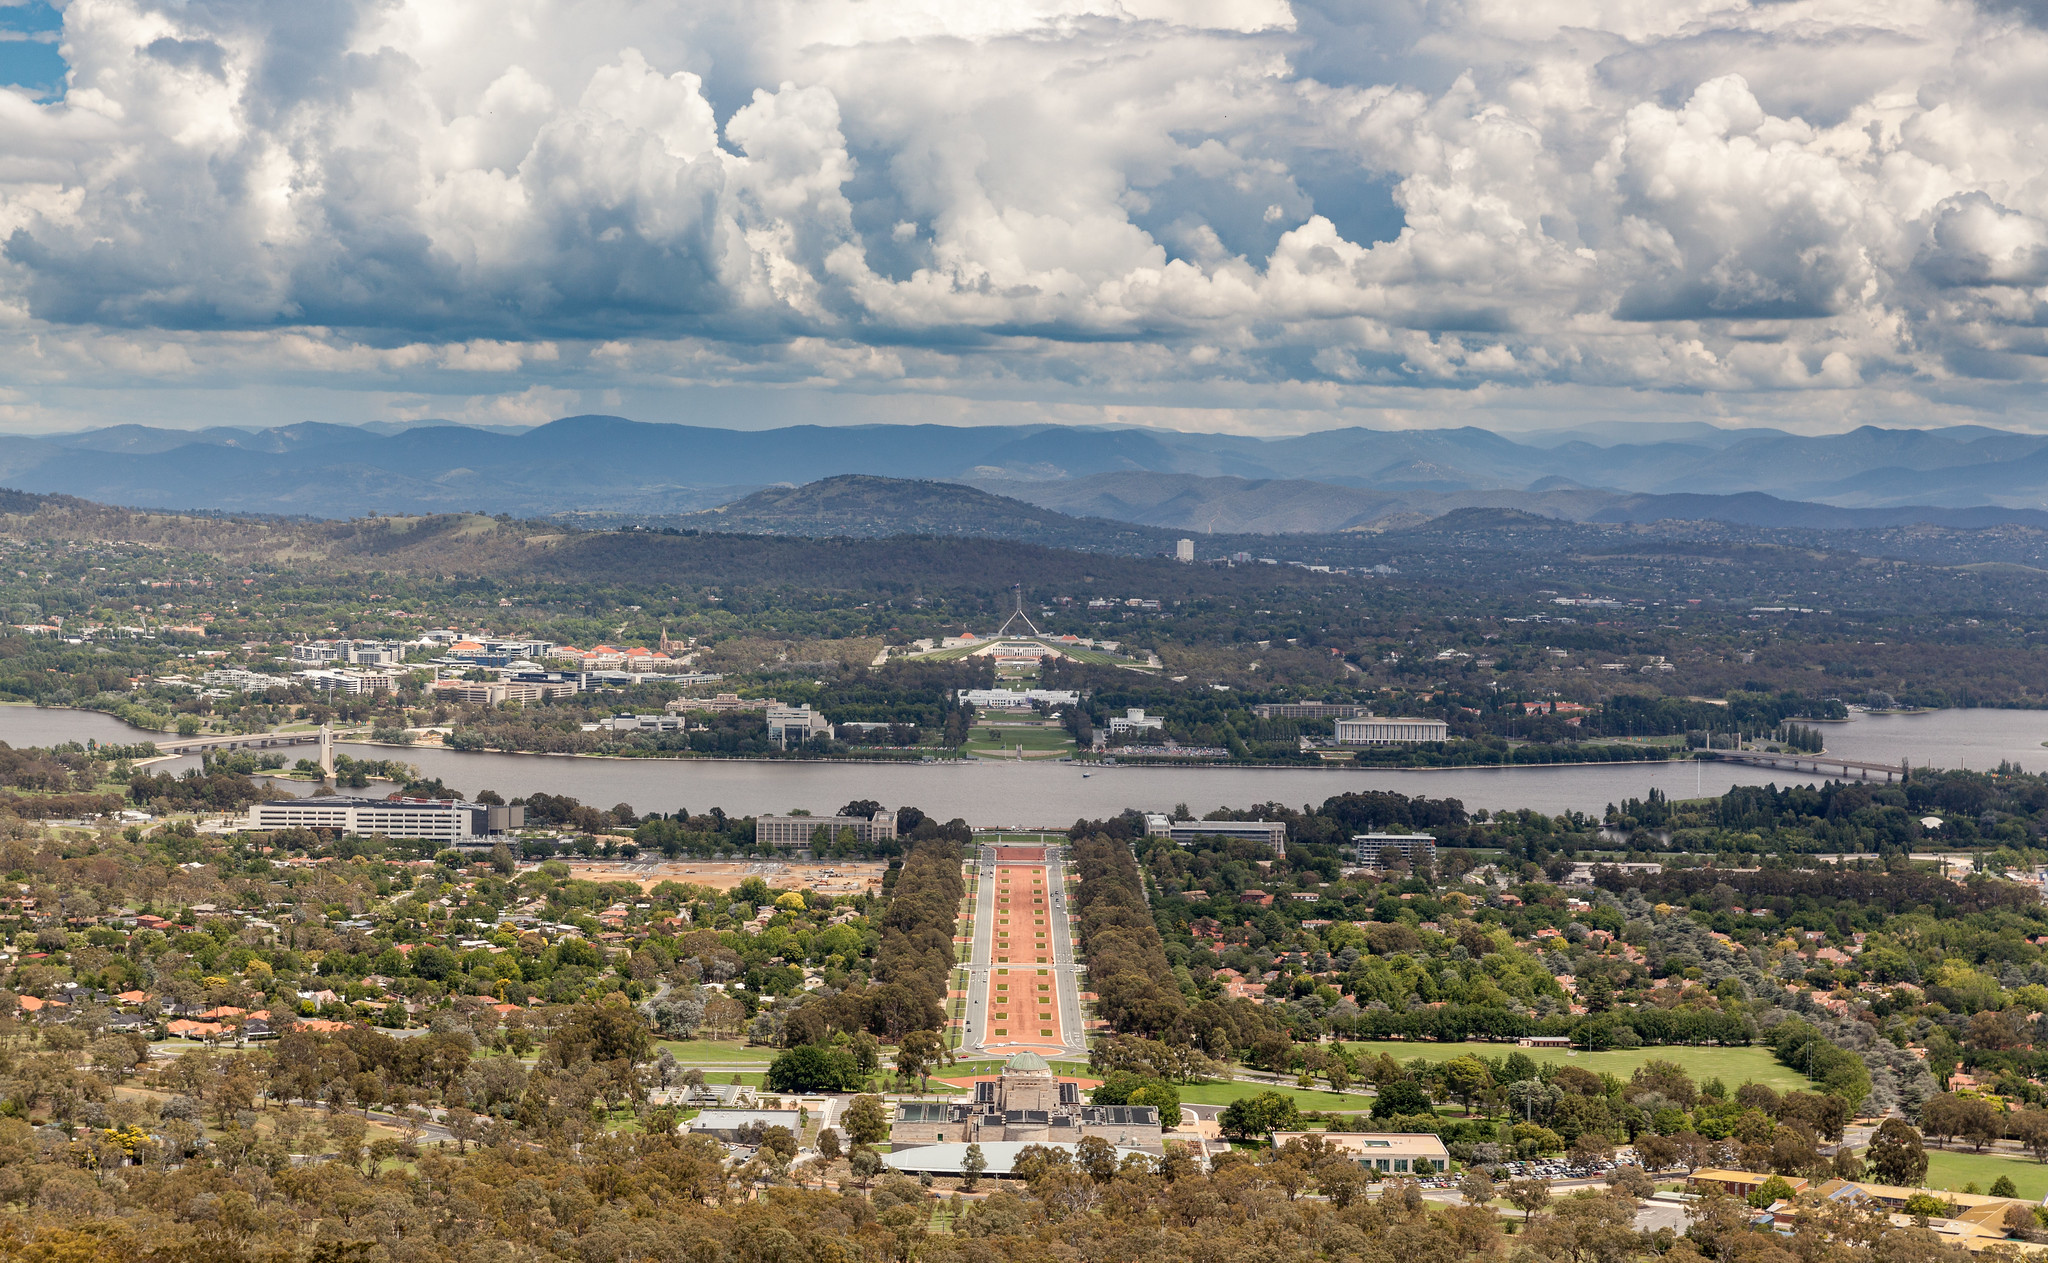 10 Best Things To Do in Canberra, Australia [with Suggested Tours]